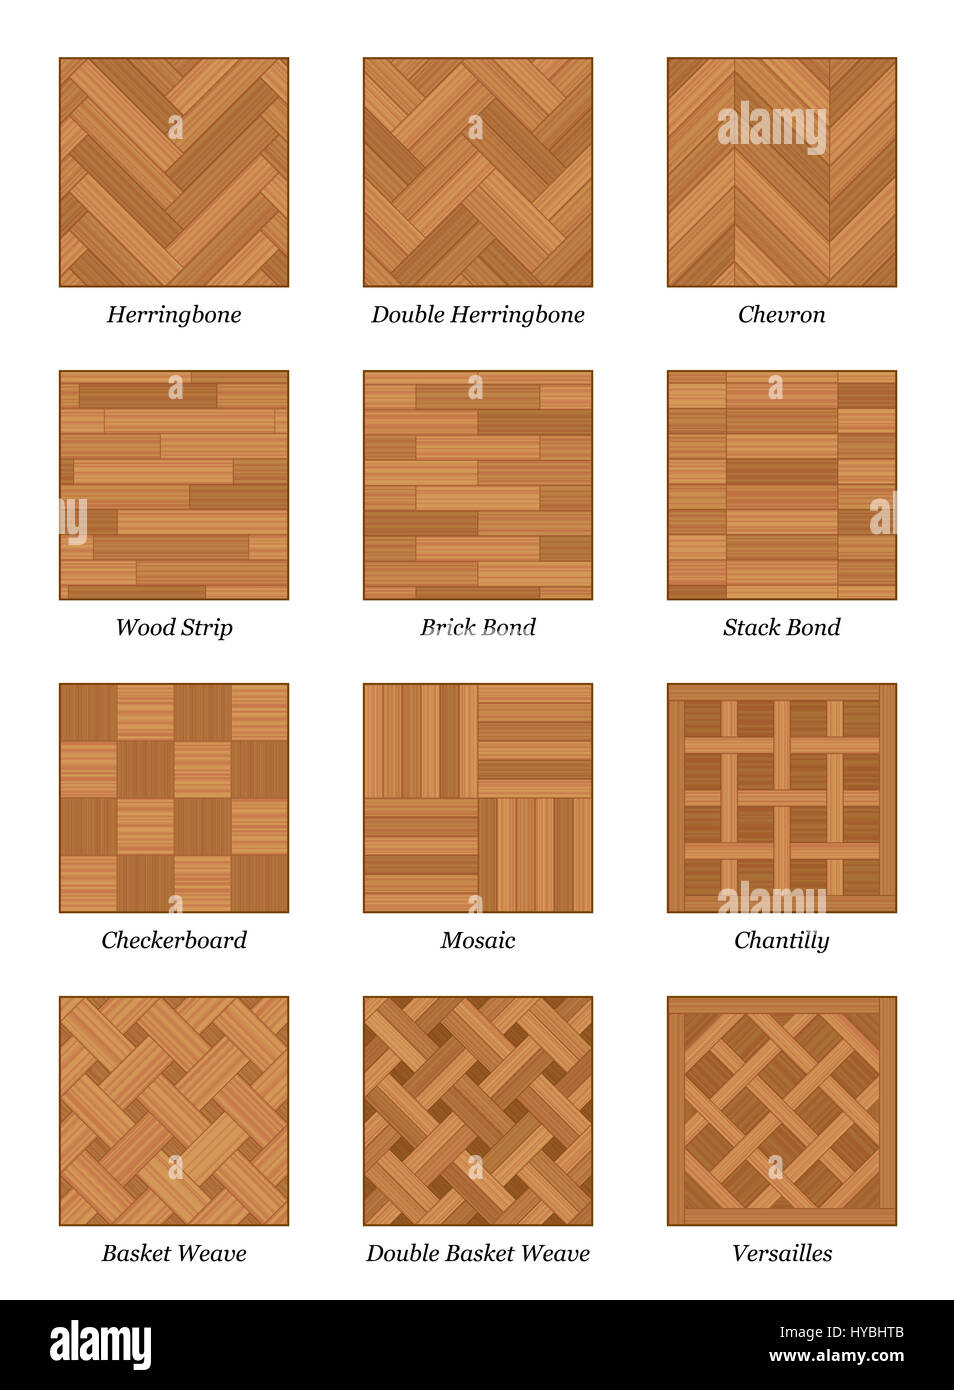 parquet pattern chart most popular parquetry wood flooring samples stock photo 137323771 alamy. Black Bedroom Furniture Sets. Home Design Ideas